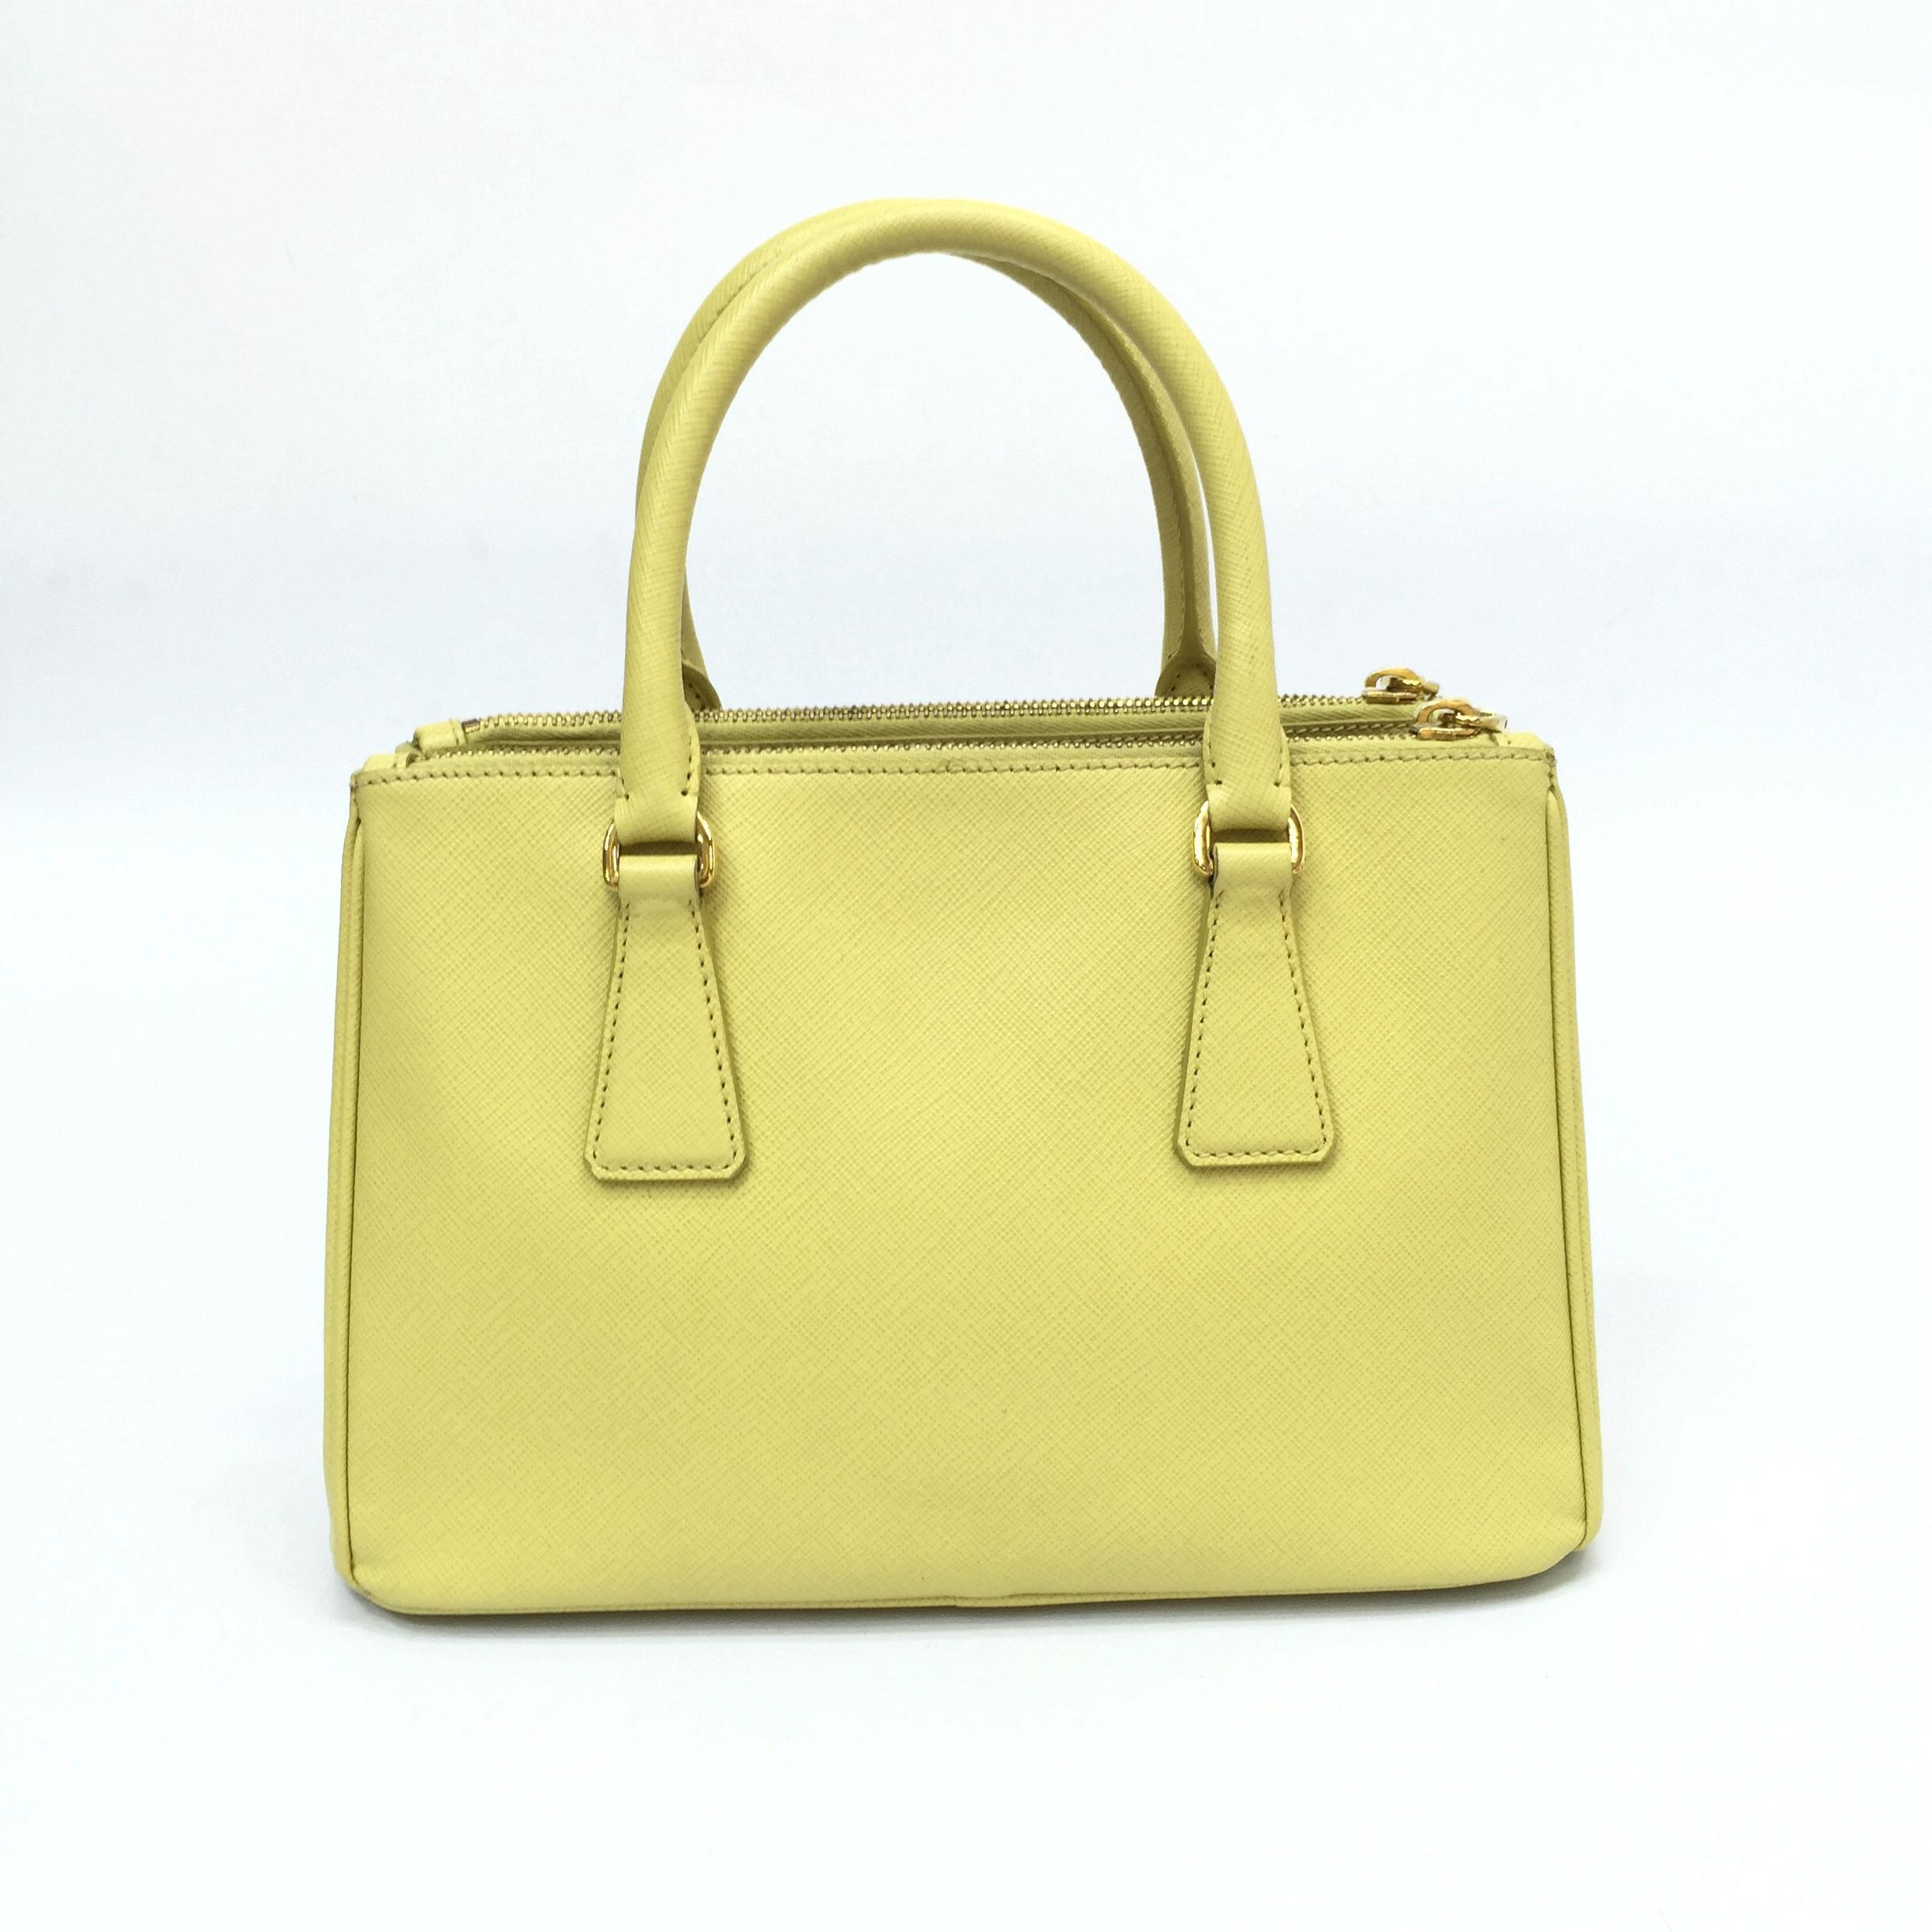 ... amazon prada double lux mini saffiano zip tote yellow leather satchel  tradesy 280fb 718f4 ce7e4cd78294e